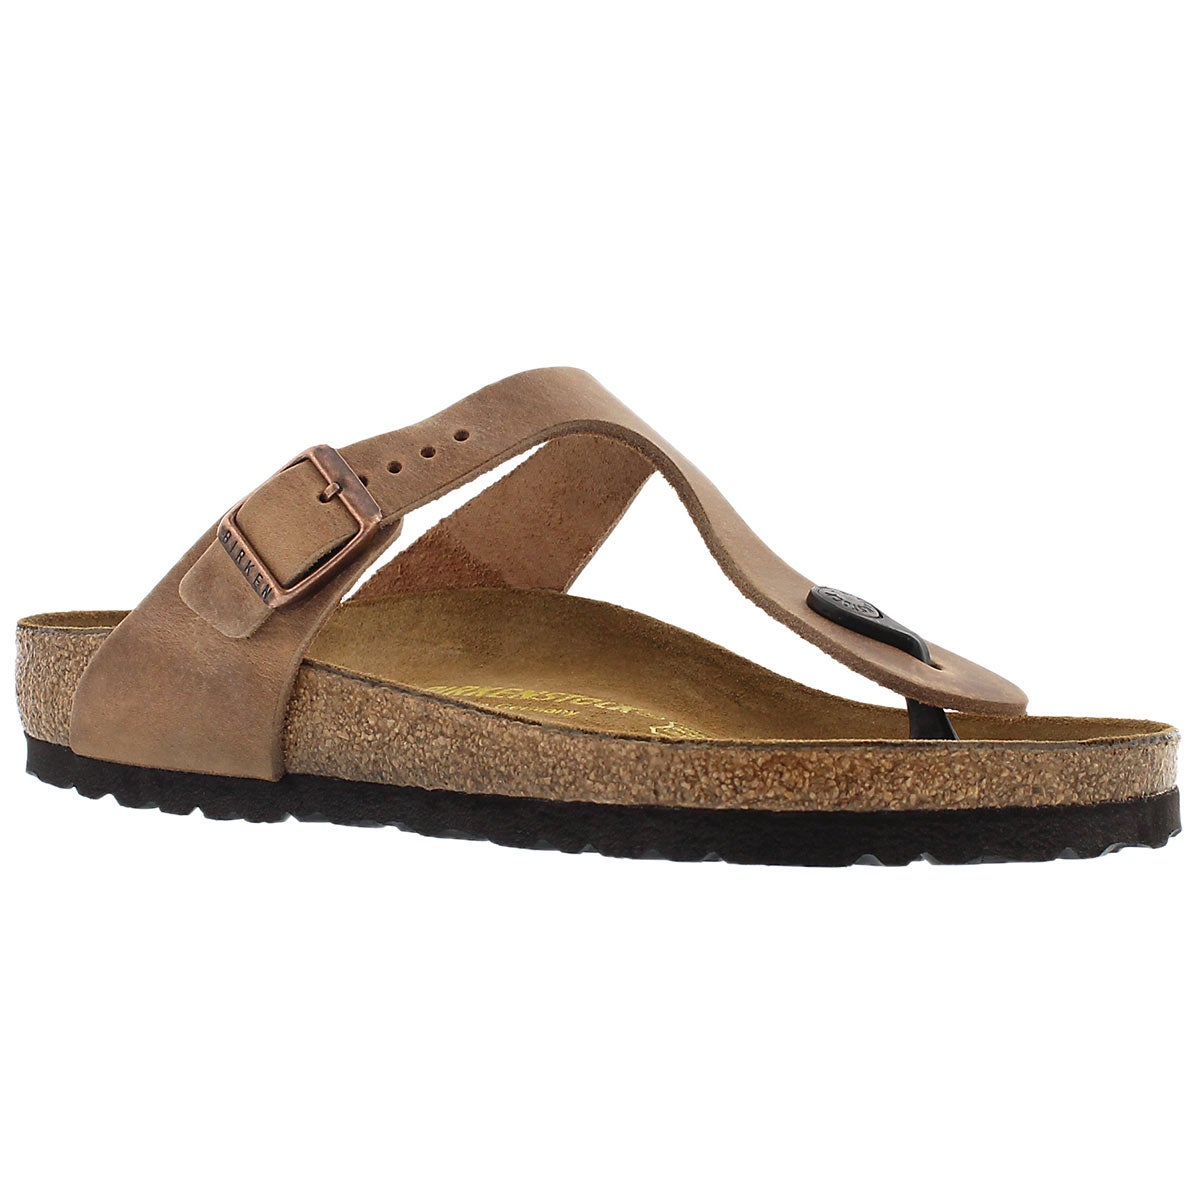 Lds Gizeh antique brown thong sandal